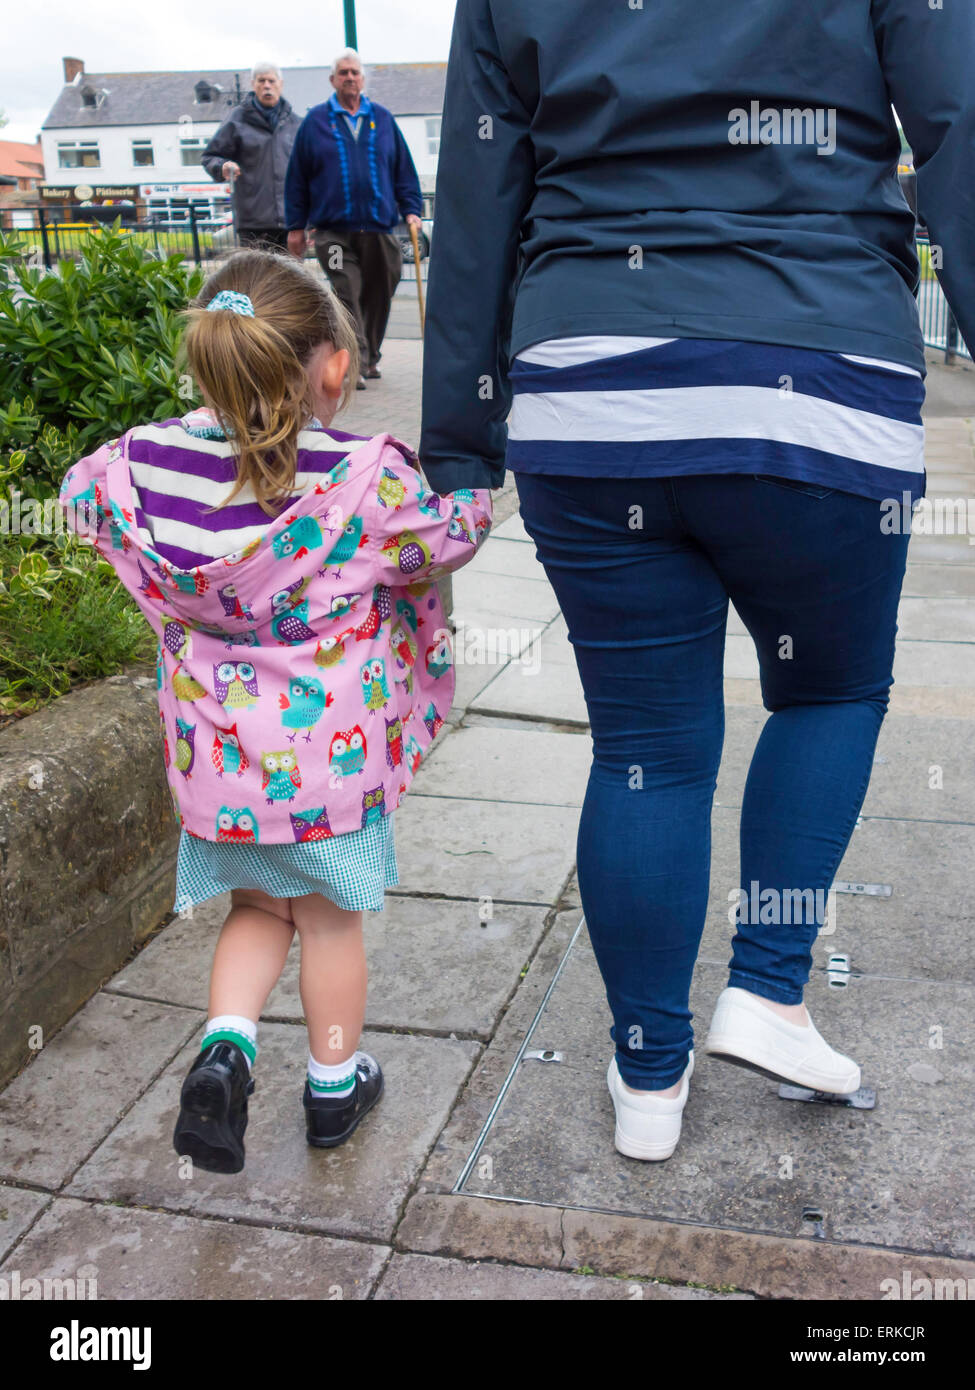 Rear view of a mother holding the hand of a young girl going home from school - Stock Image